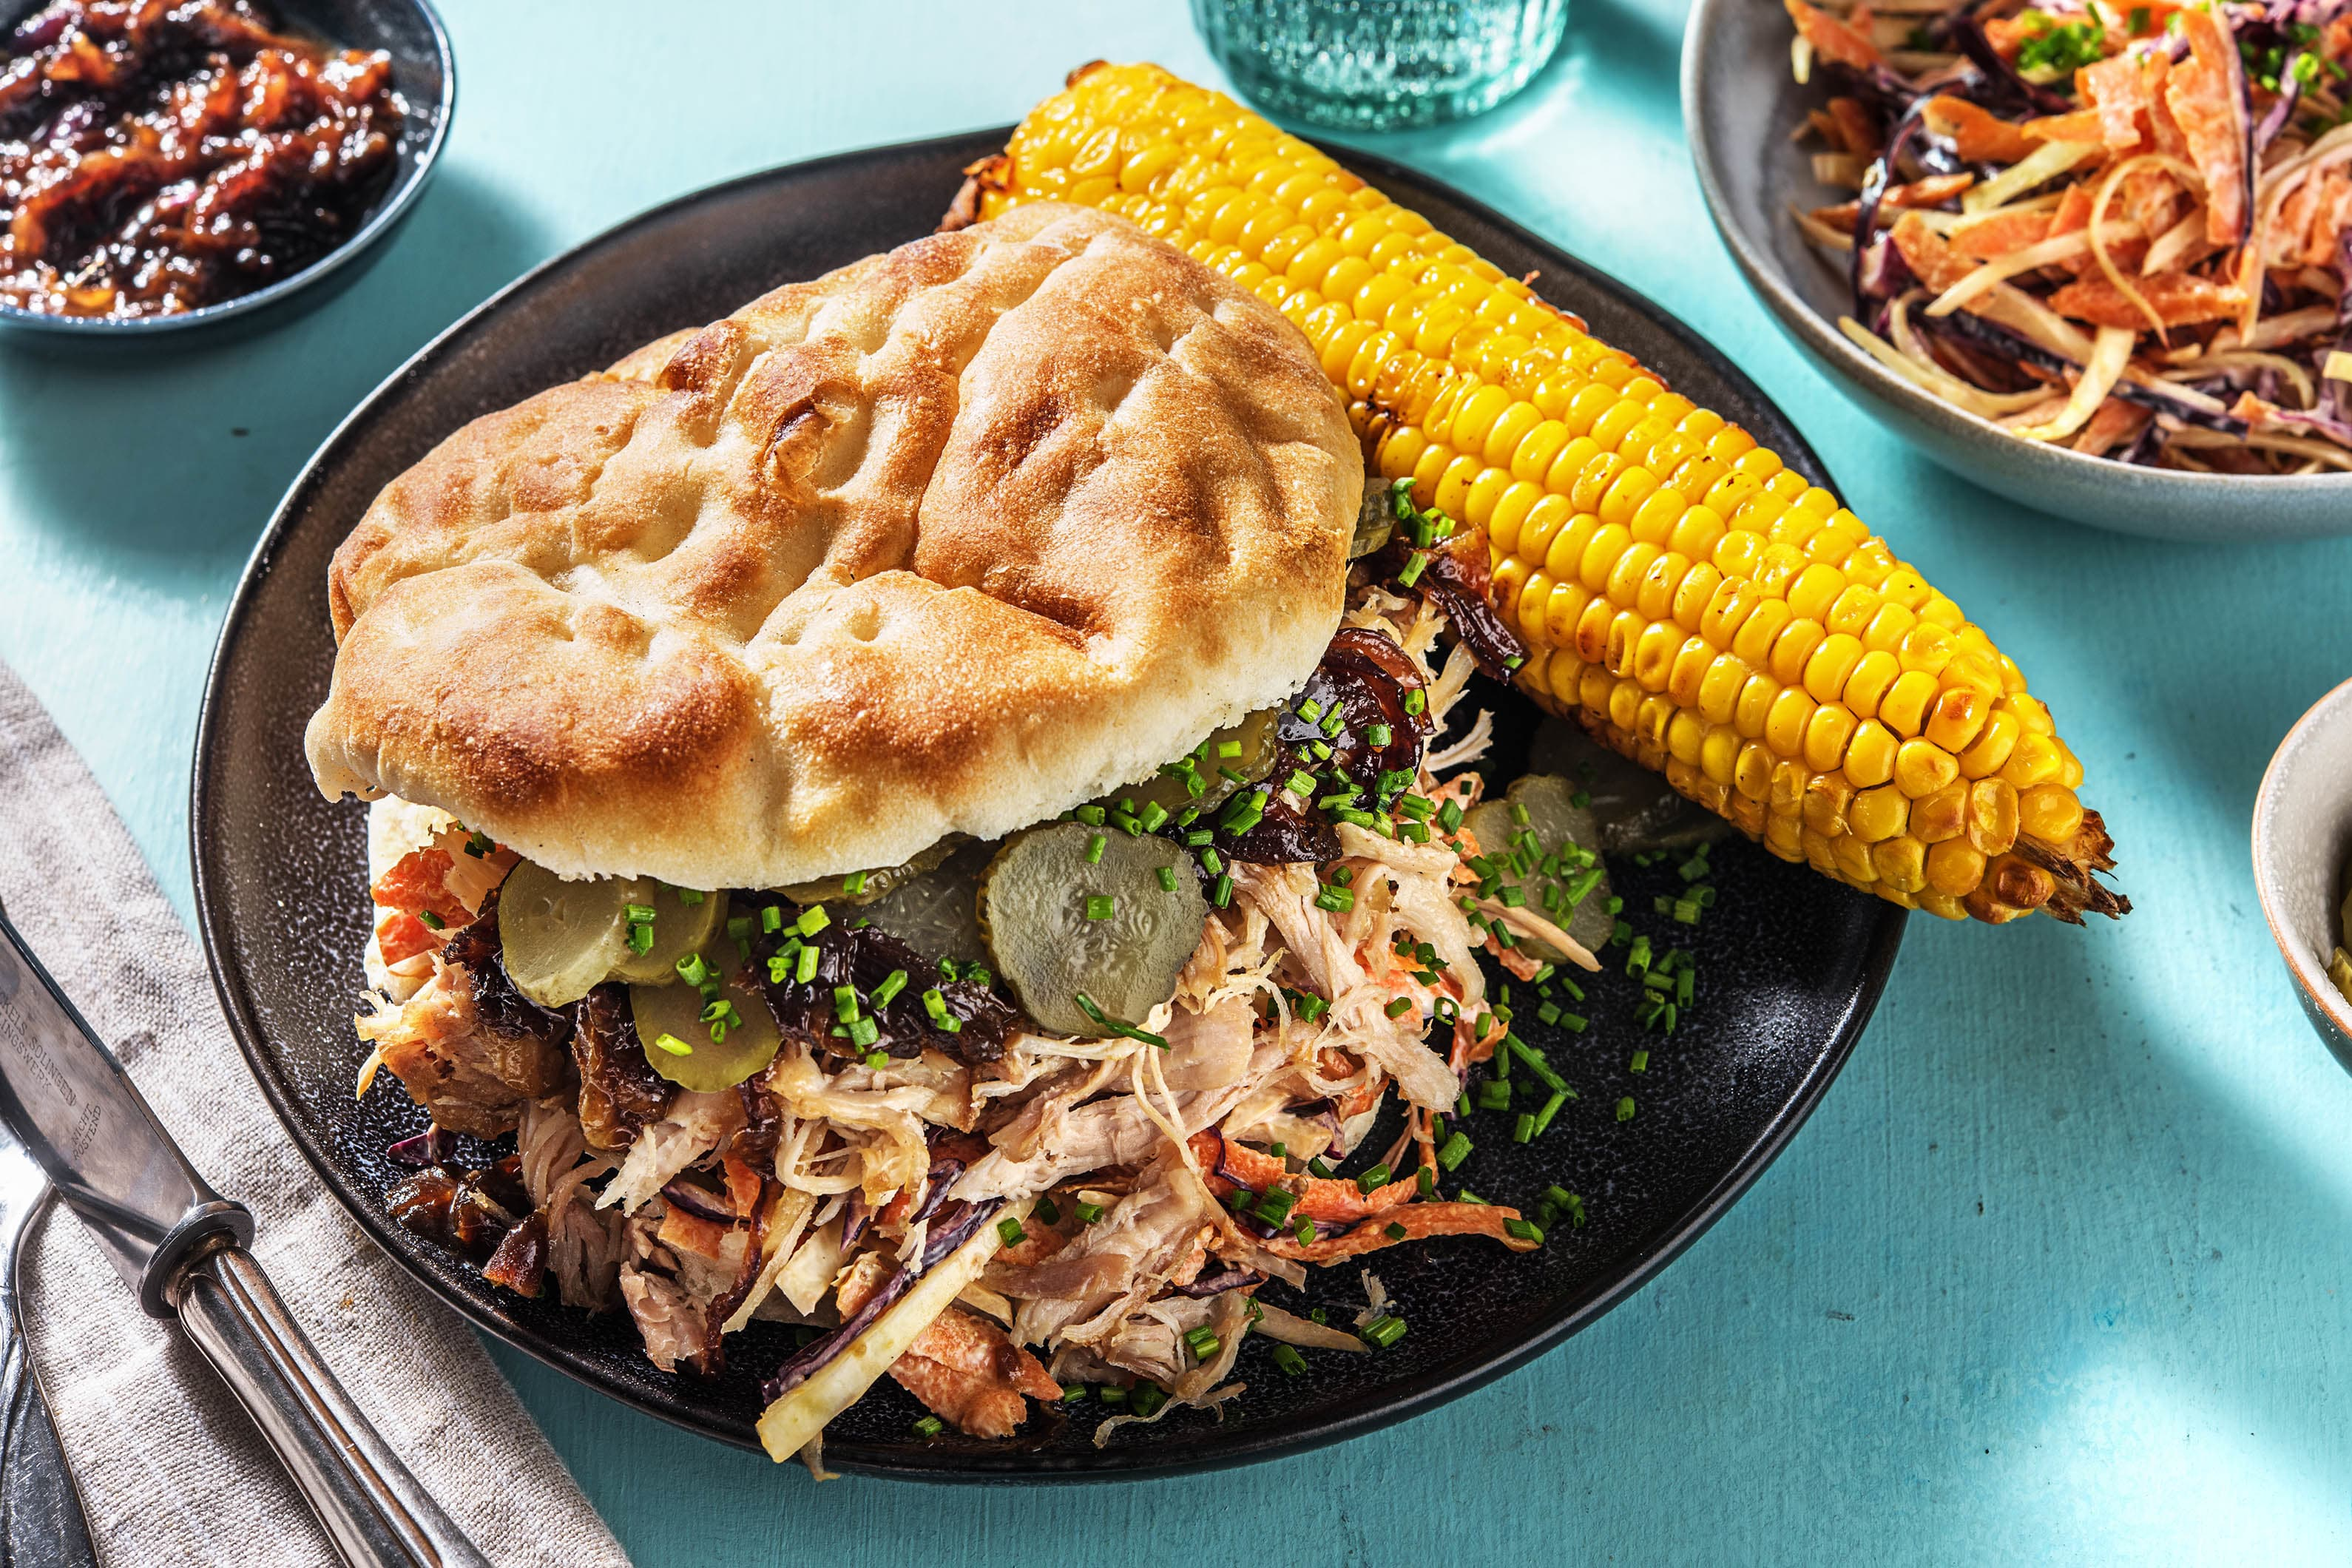 Pulled chicken met coleslaw, maiskolf en augurk